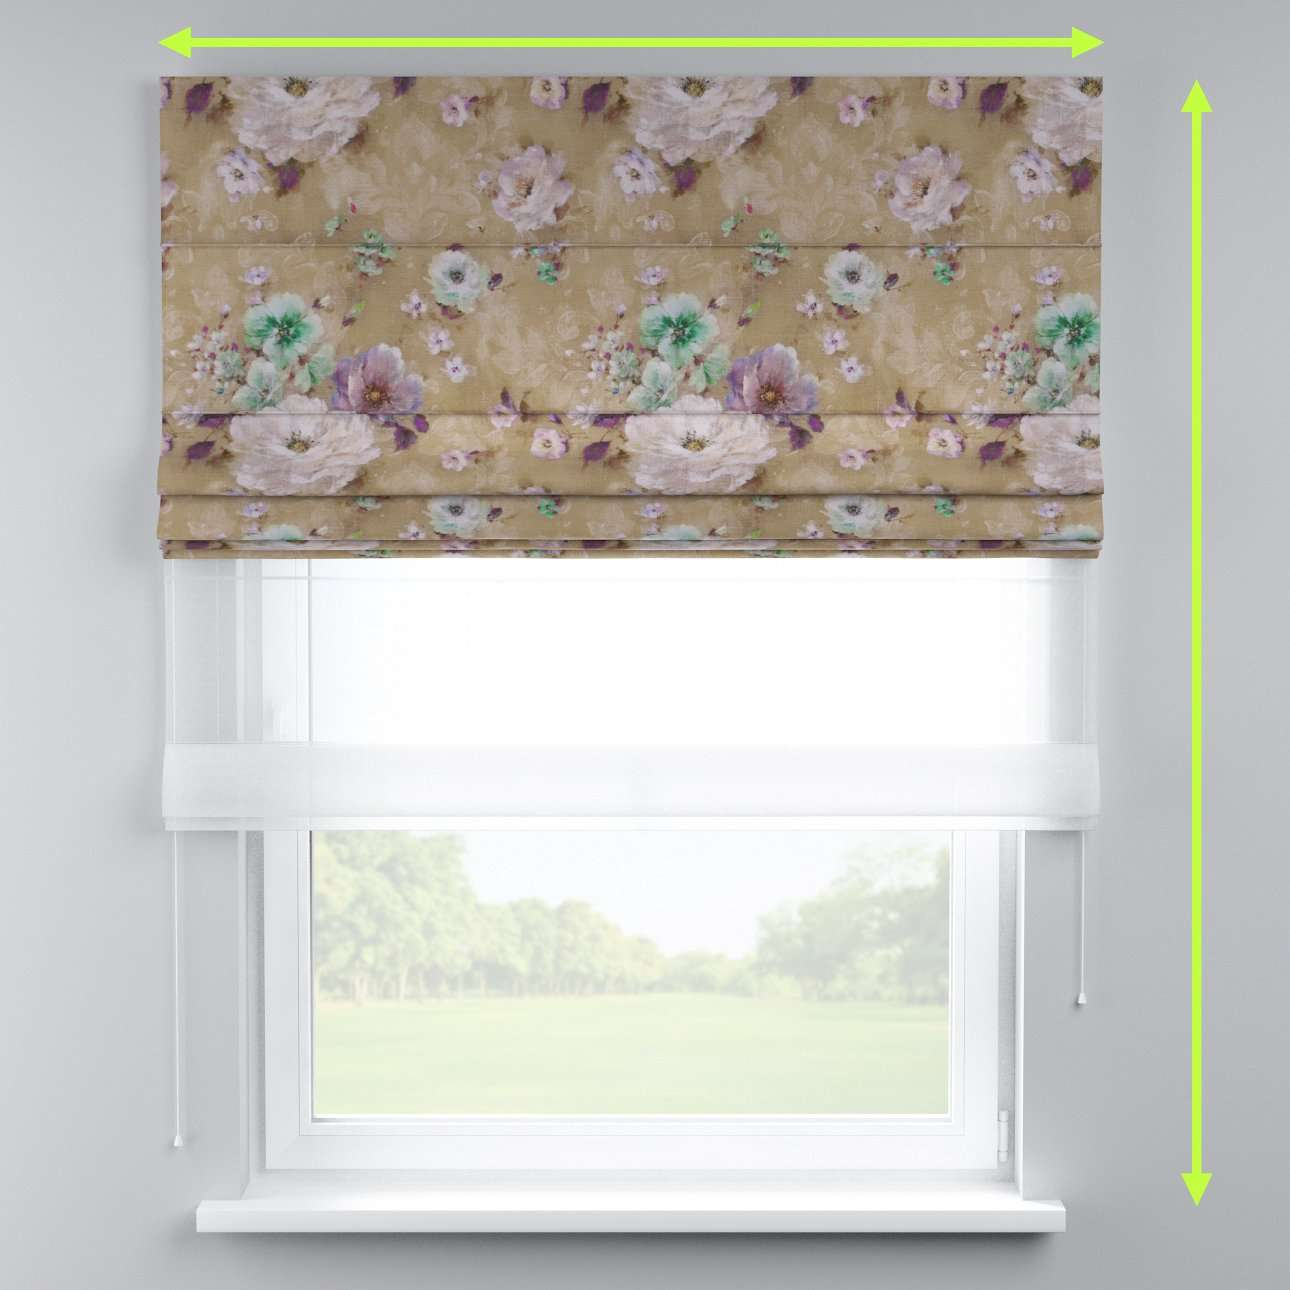 Voile and fabric roman blind (DUO II) in collection Monet, fabric: 137-82